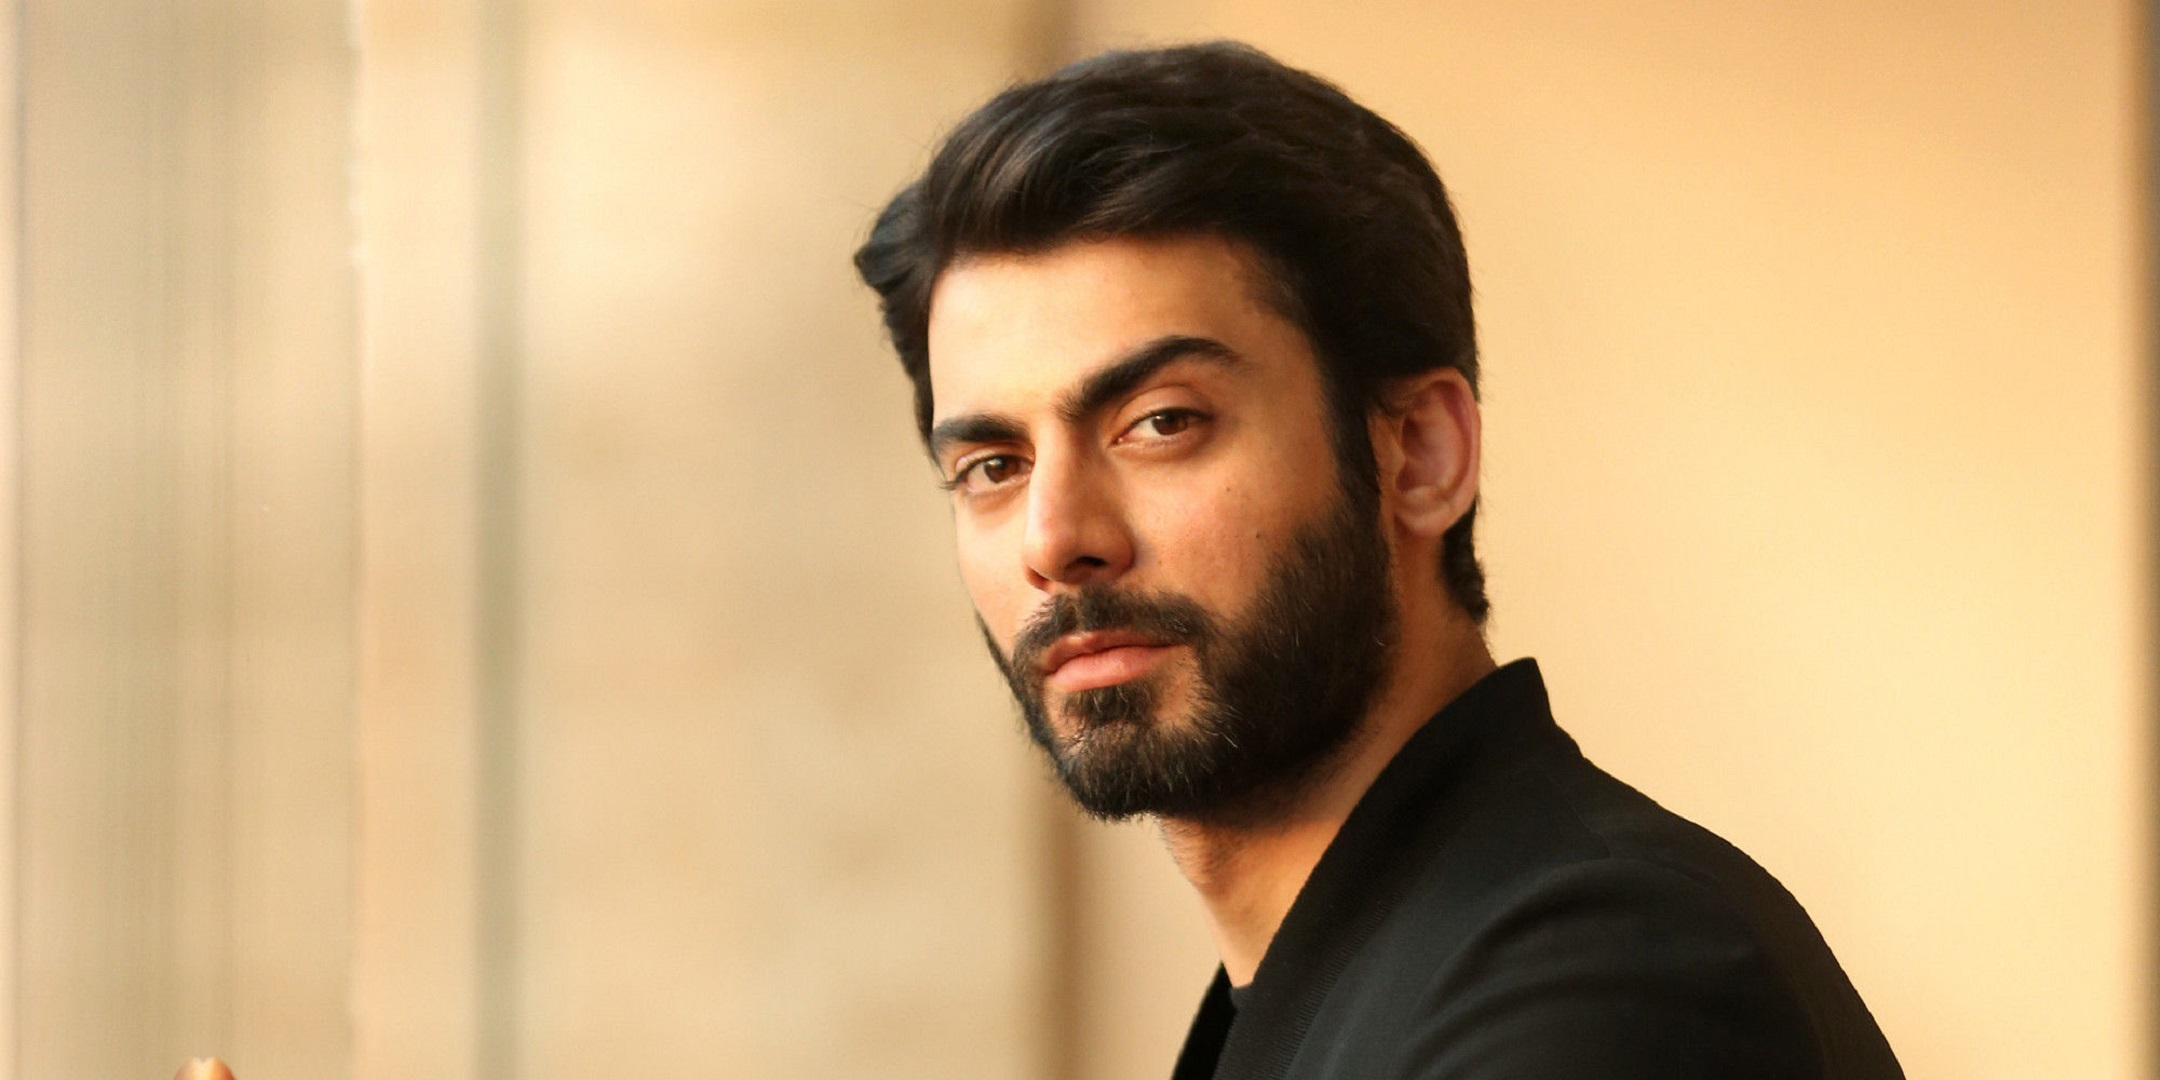 Fawad Khan's Performance On Uth Jaag And His Future Projects